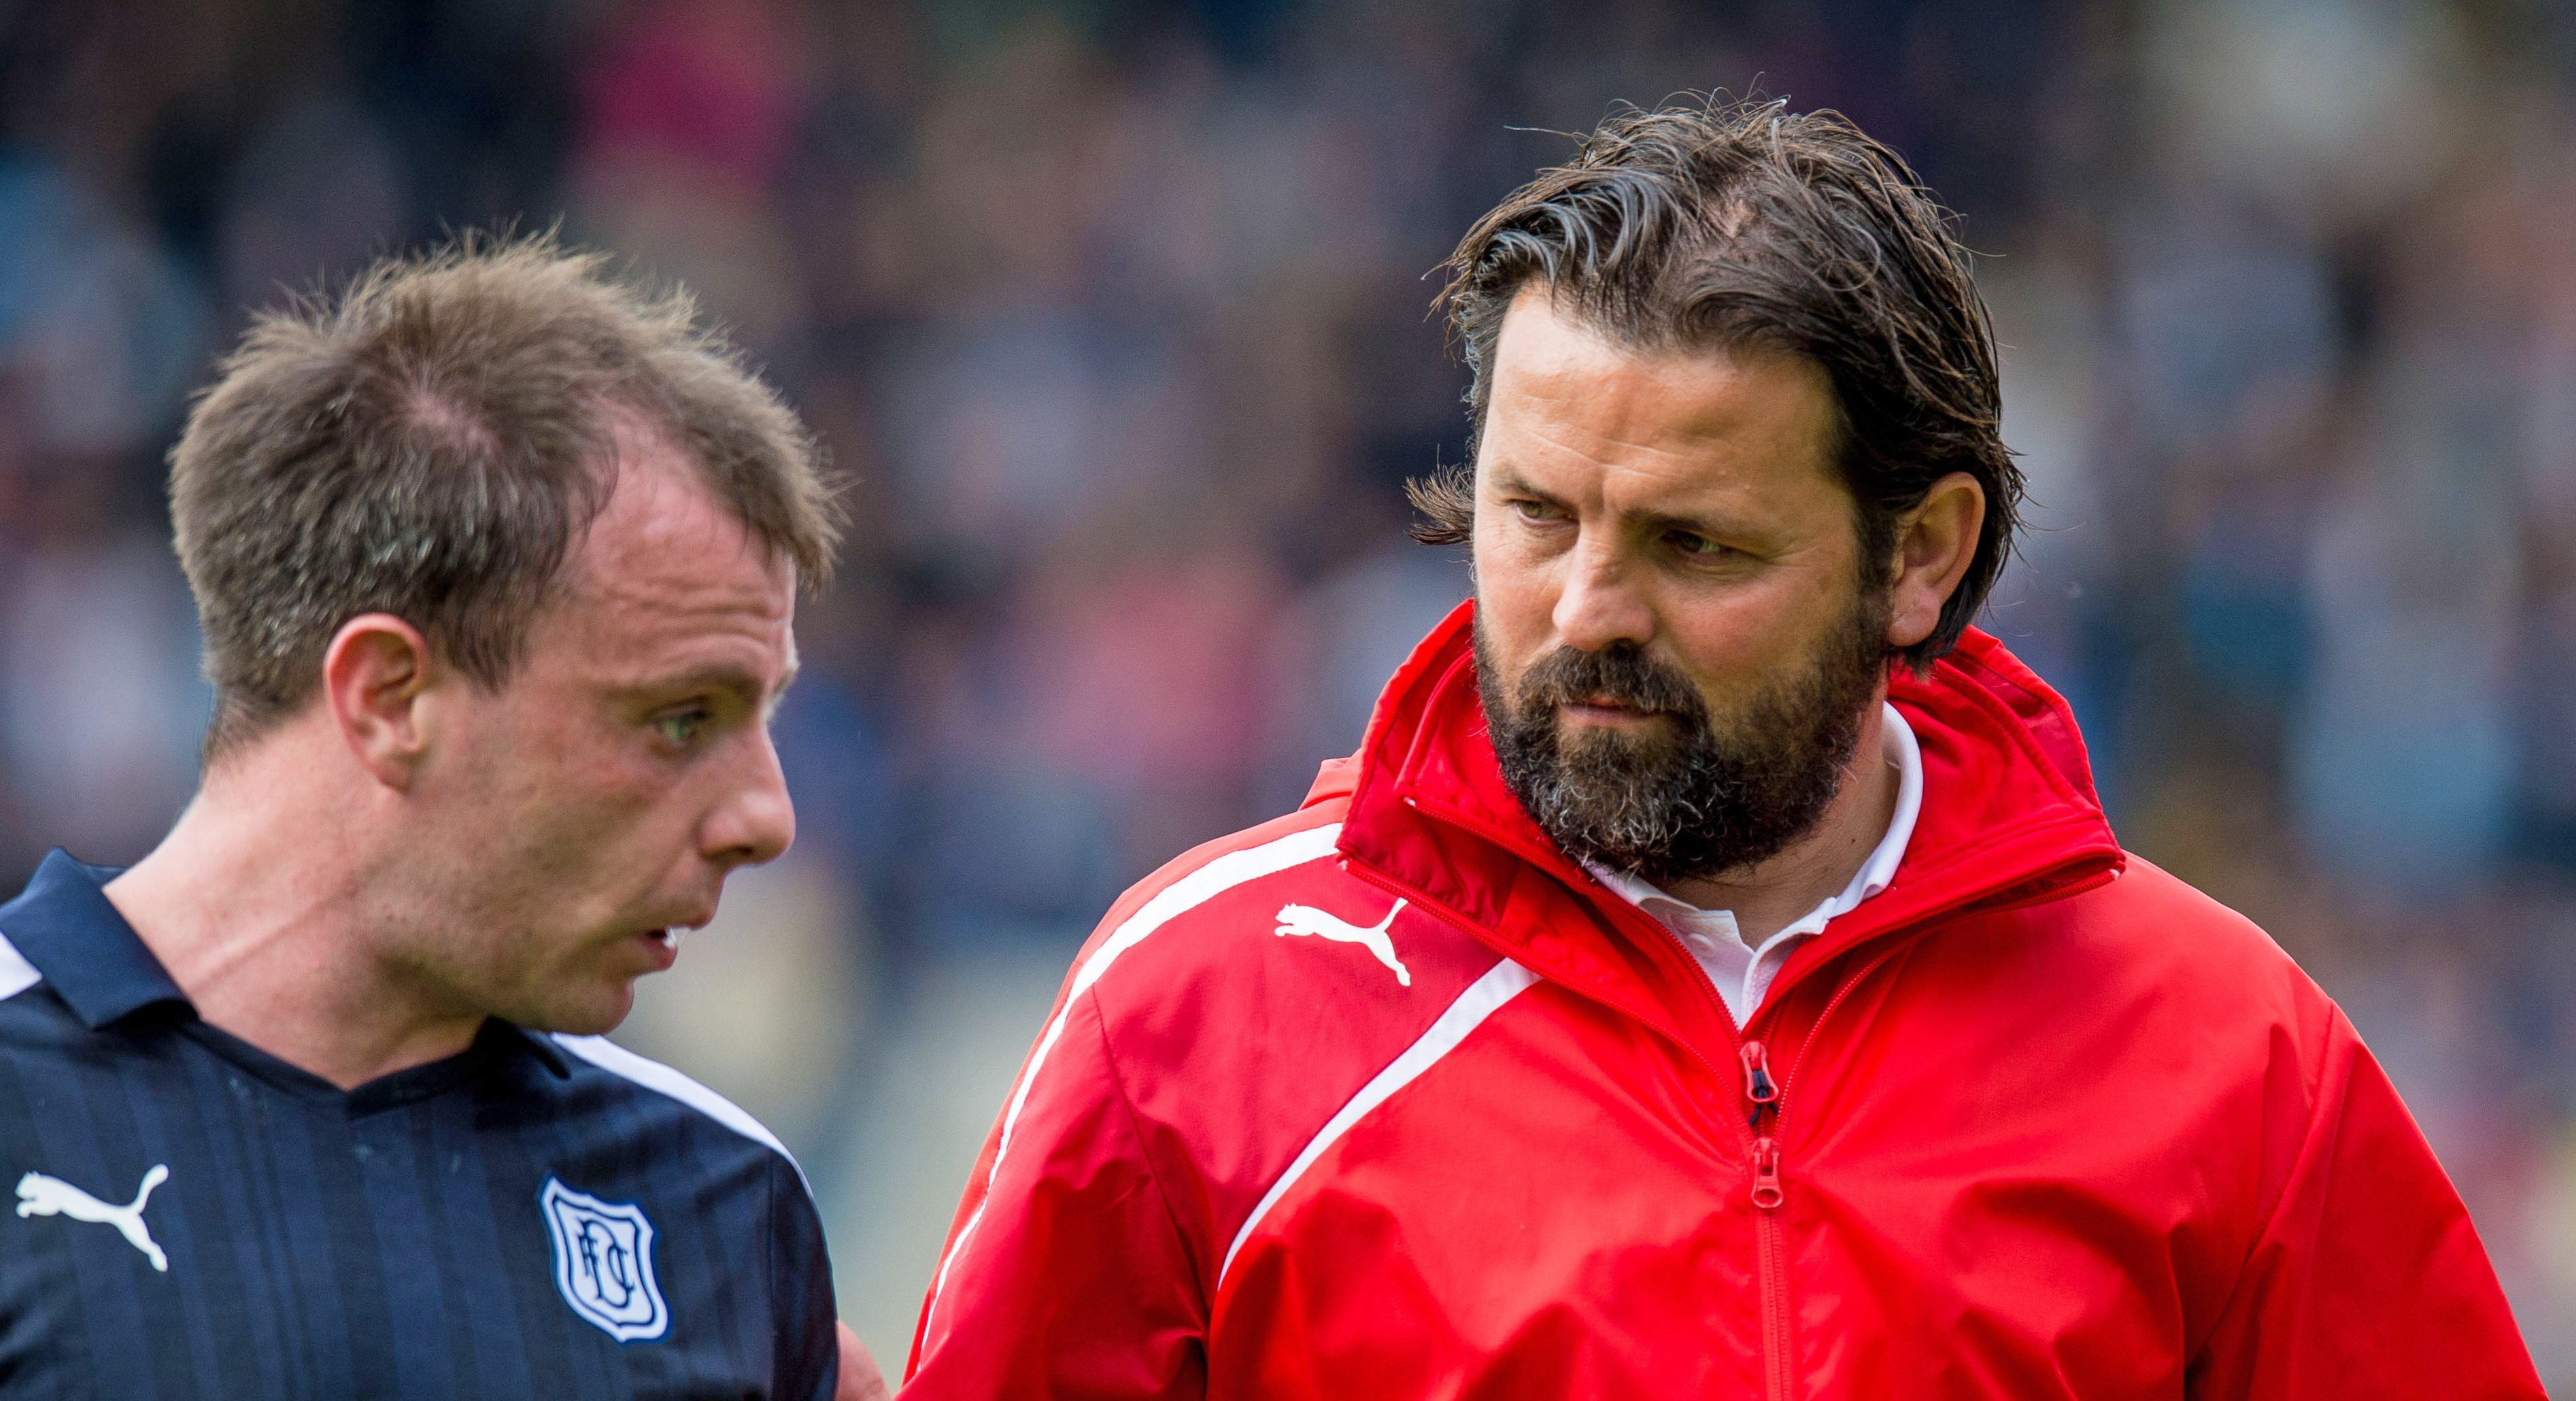 Paul McGowan, left, and Paul Hartley.